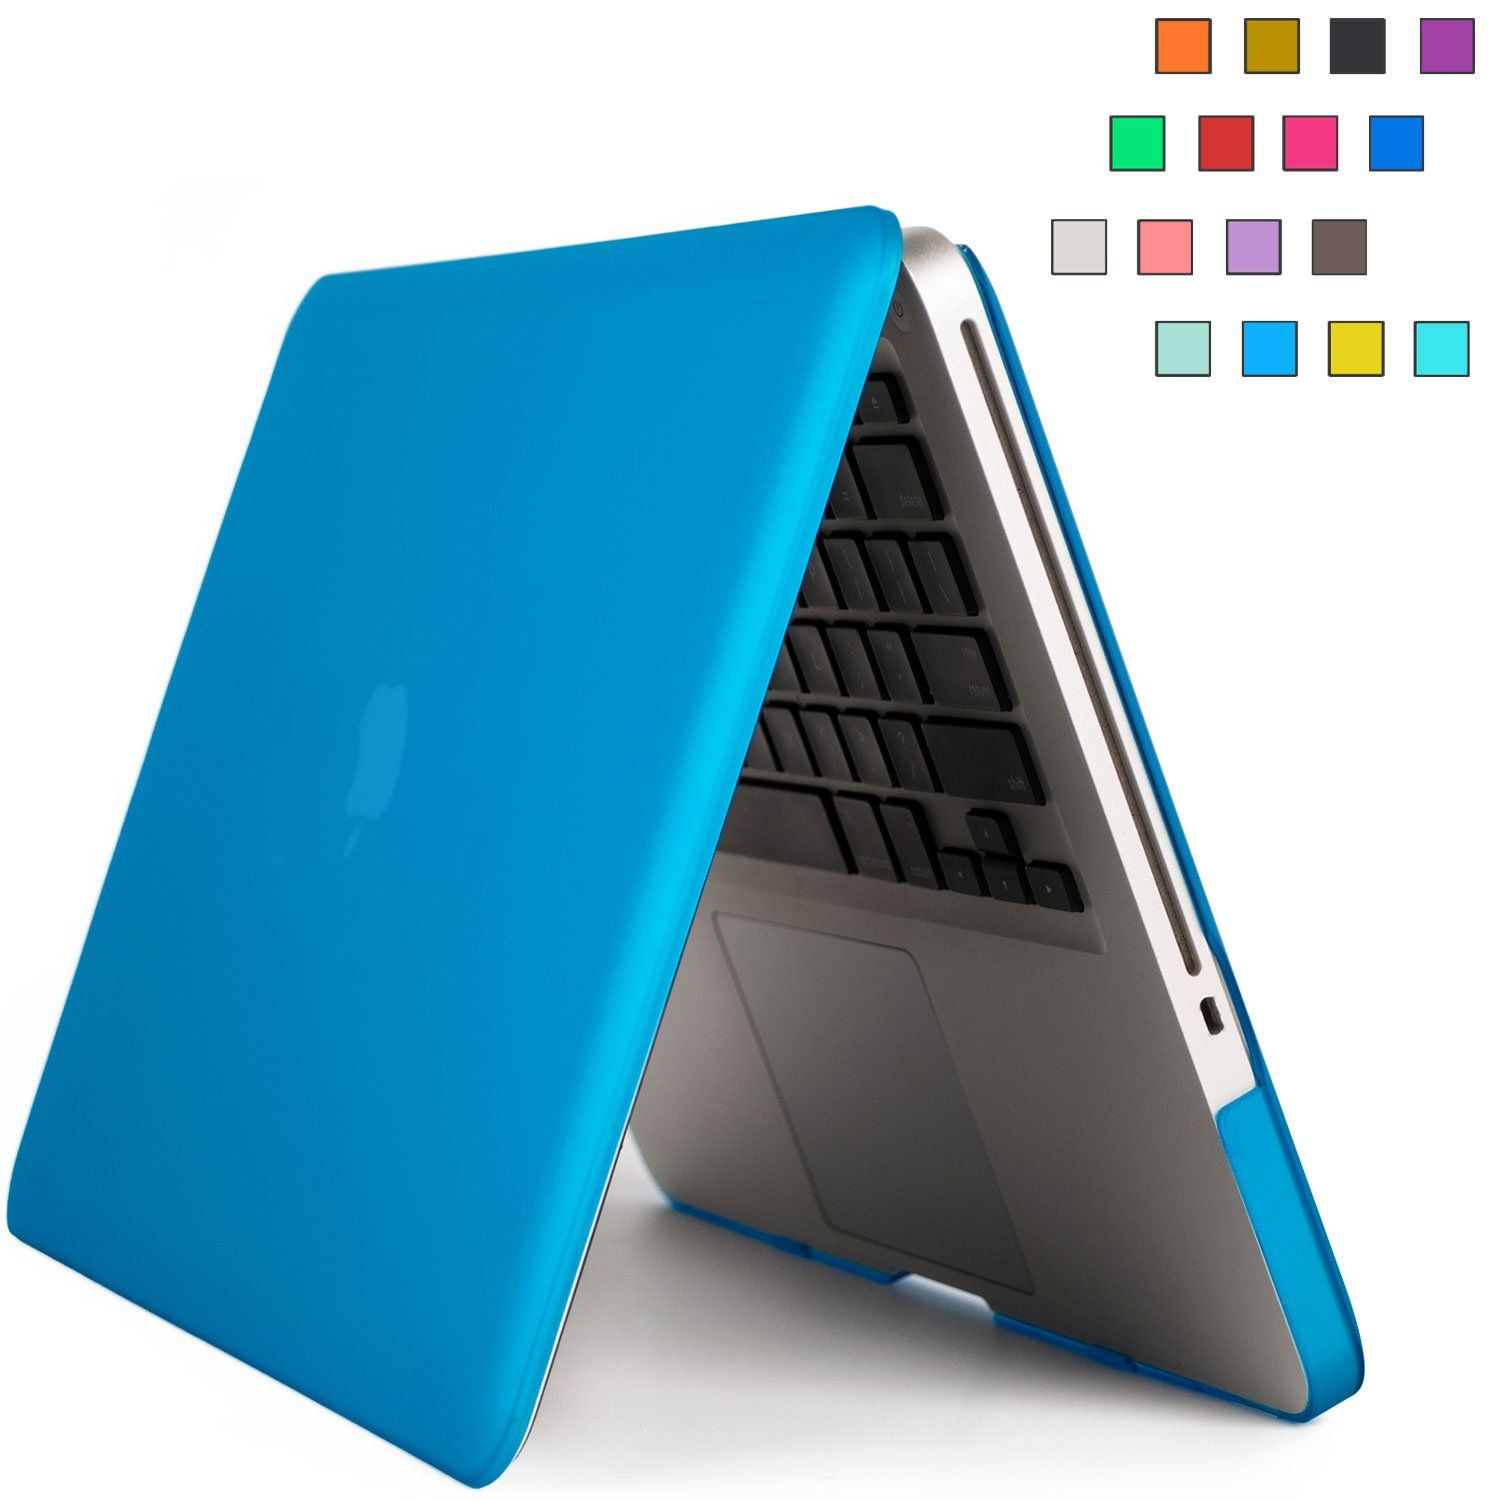 Matte Hard Shell Clip Snap-on Case for MacBook Pro 15-inch[Non-Retina] Fits Model A1286 Laptop Rubberized Skin Covers(Black): Amazon.co.uk: Computers & Accessories